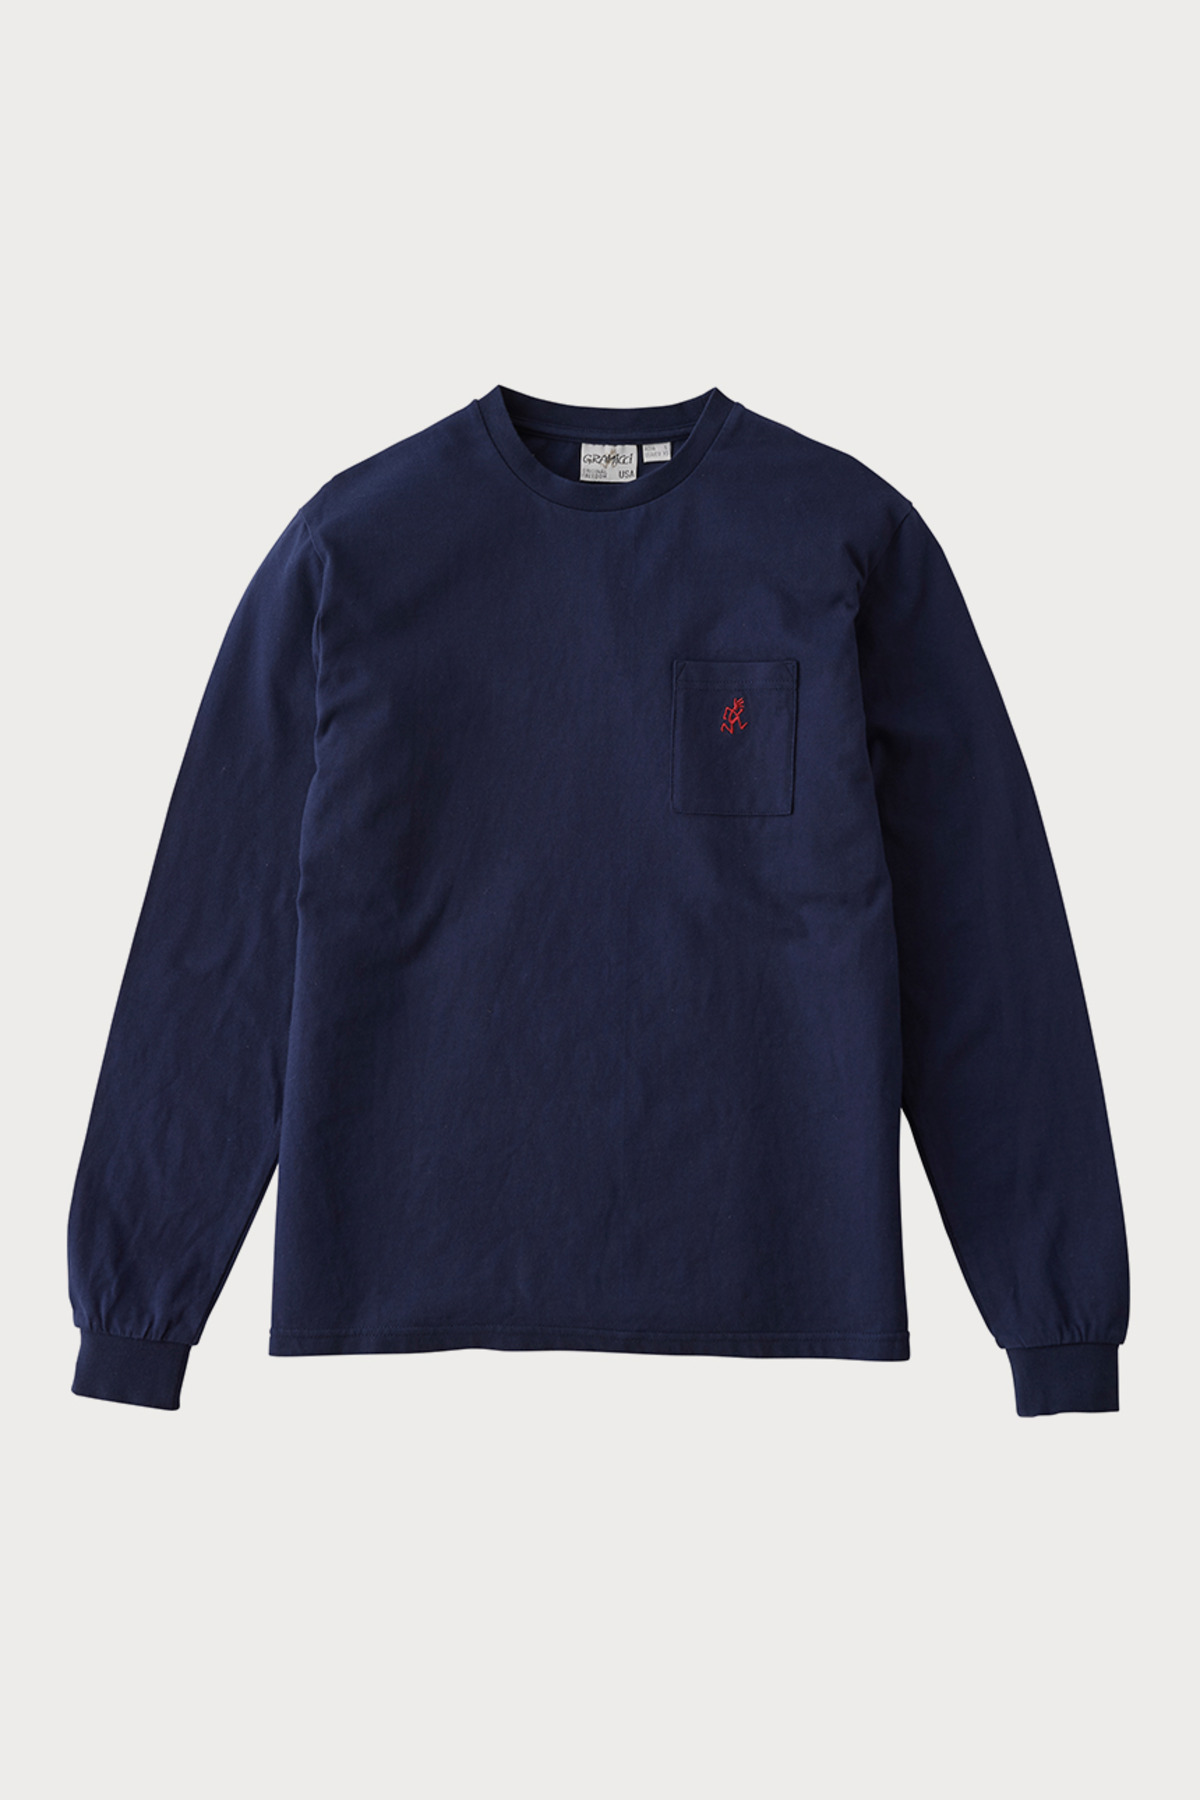 ONE POINT L/S TEE NAVY